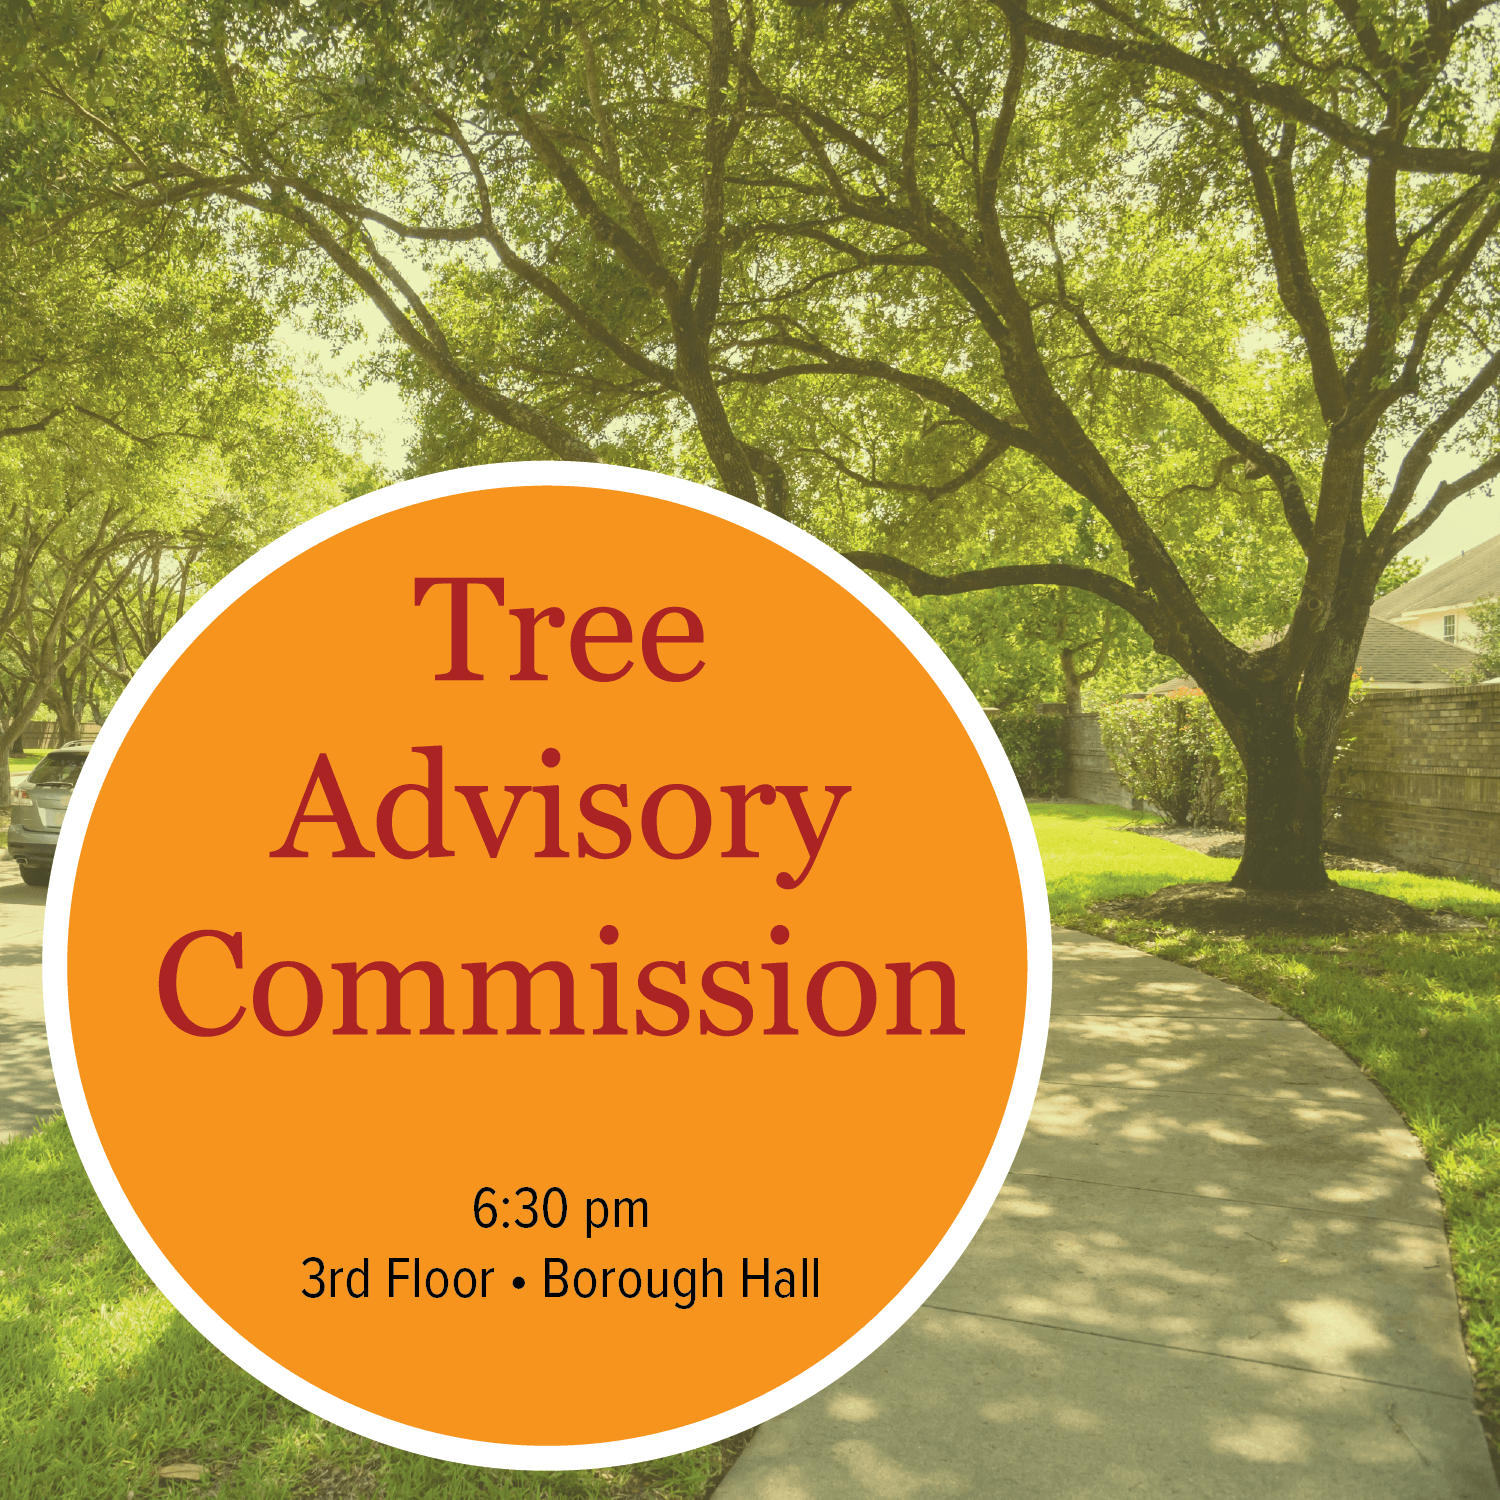 Tree Advisory Commission Meeting